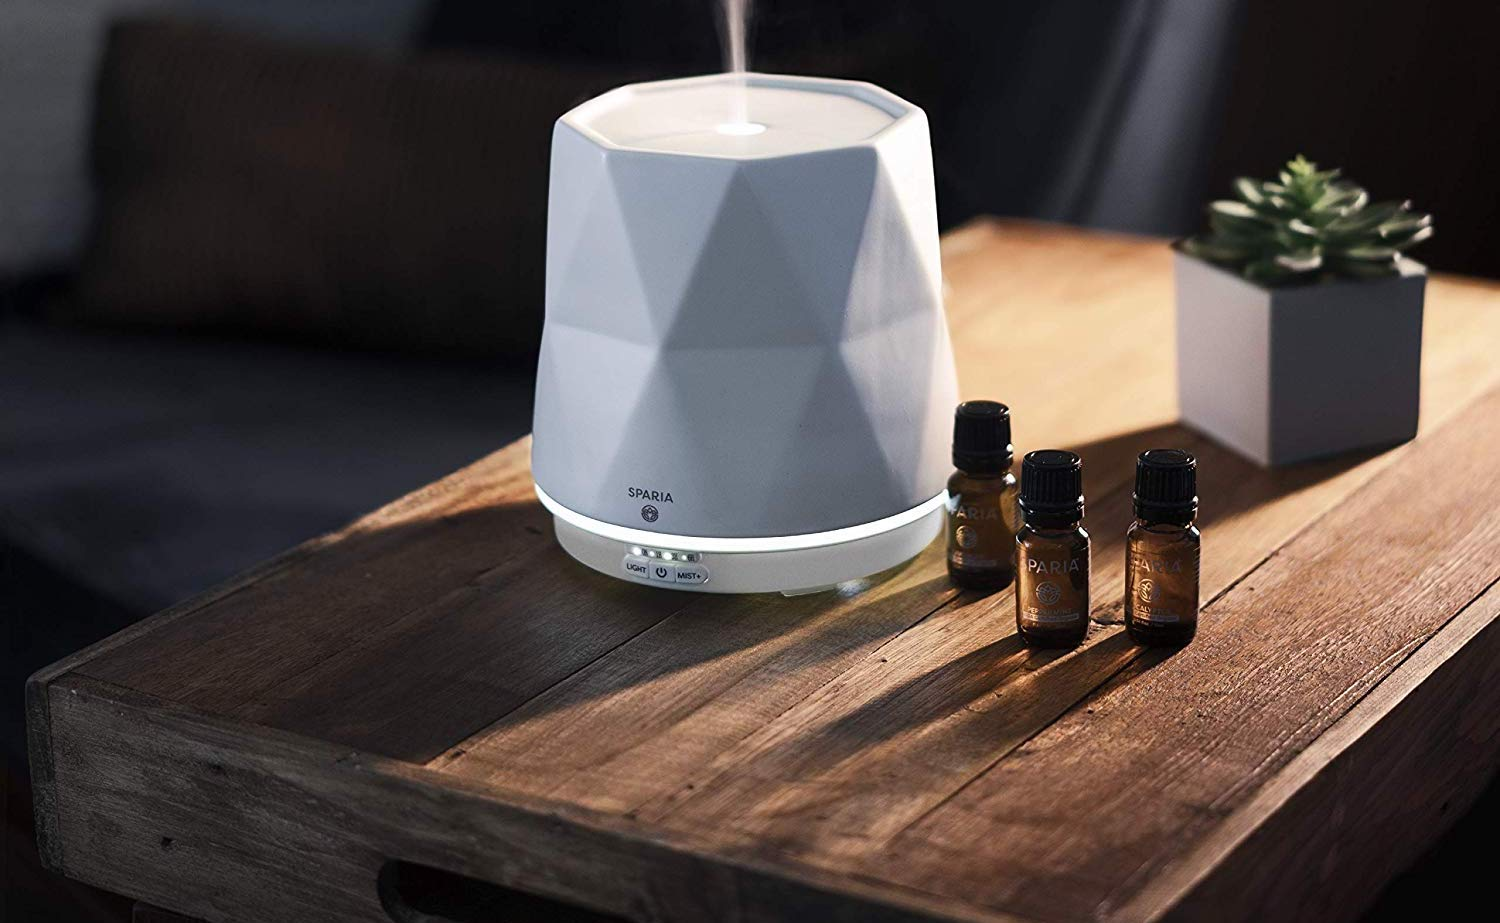 Sparia Ultrasonic Aroma Diffuser emits a relaxing mist into your room